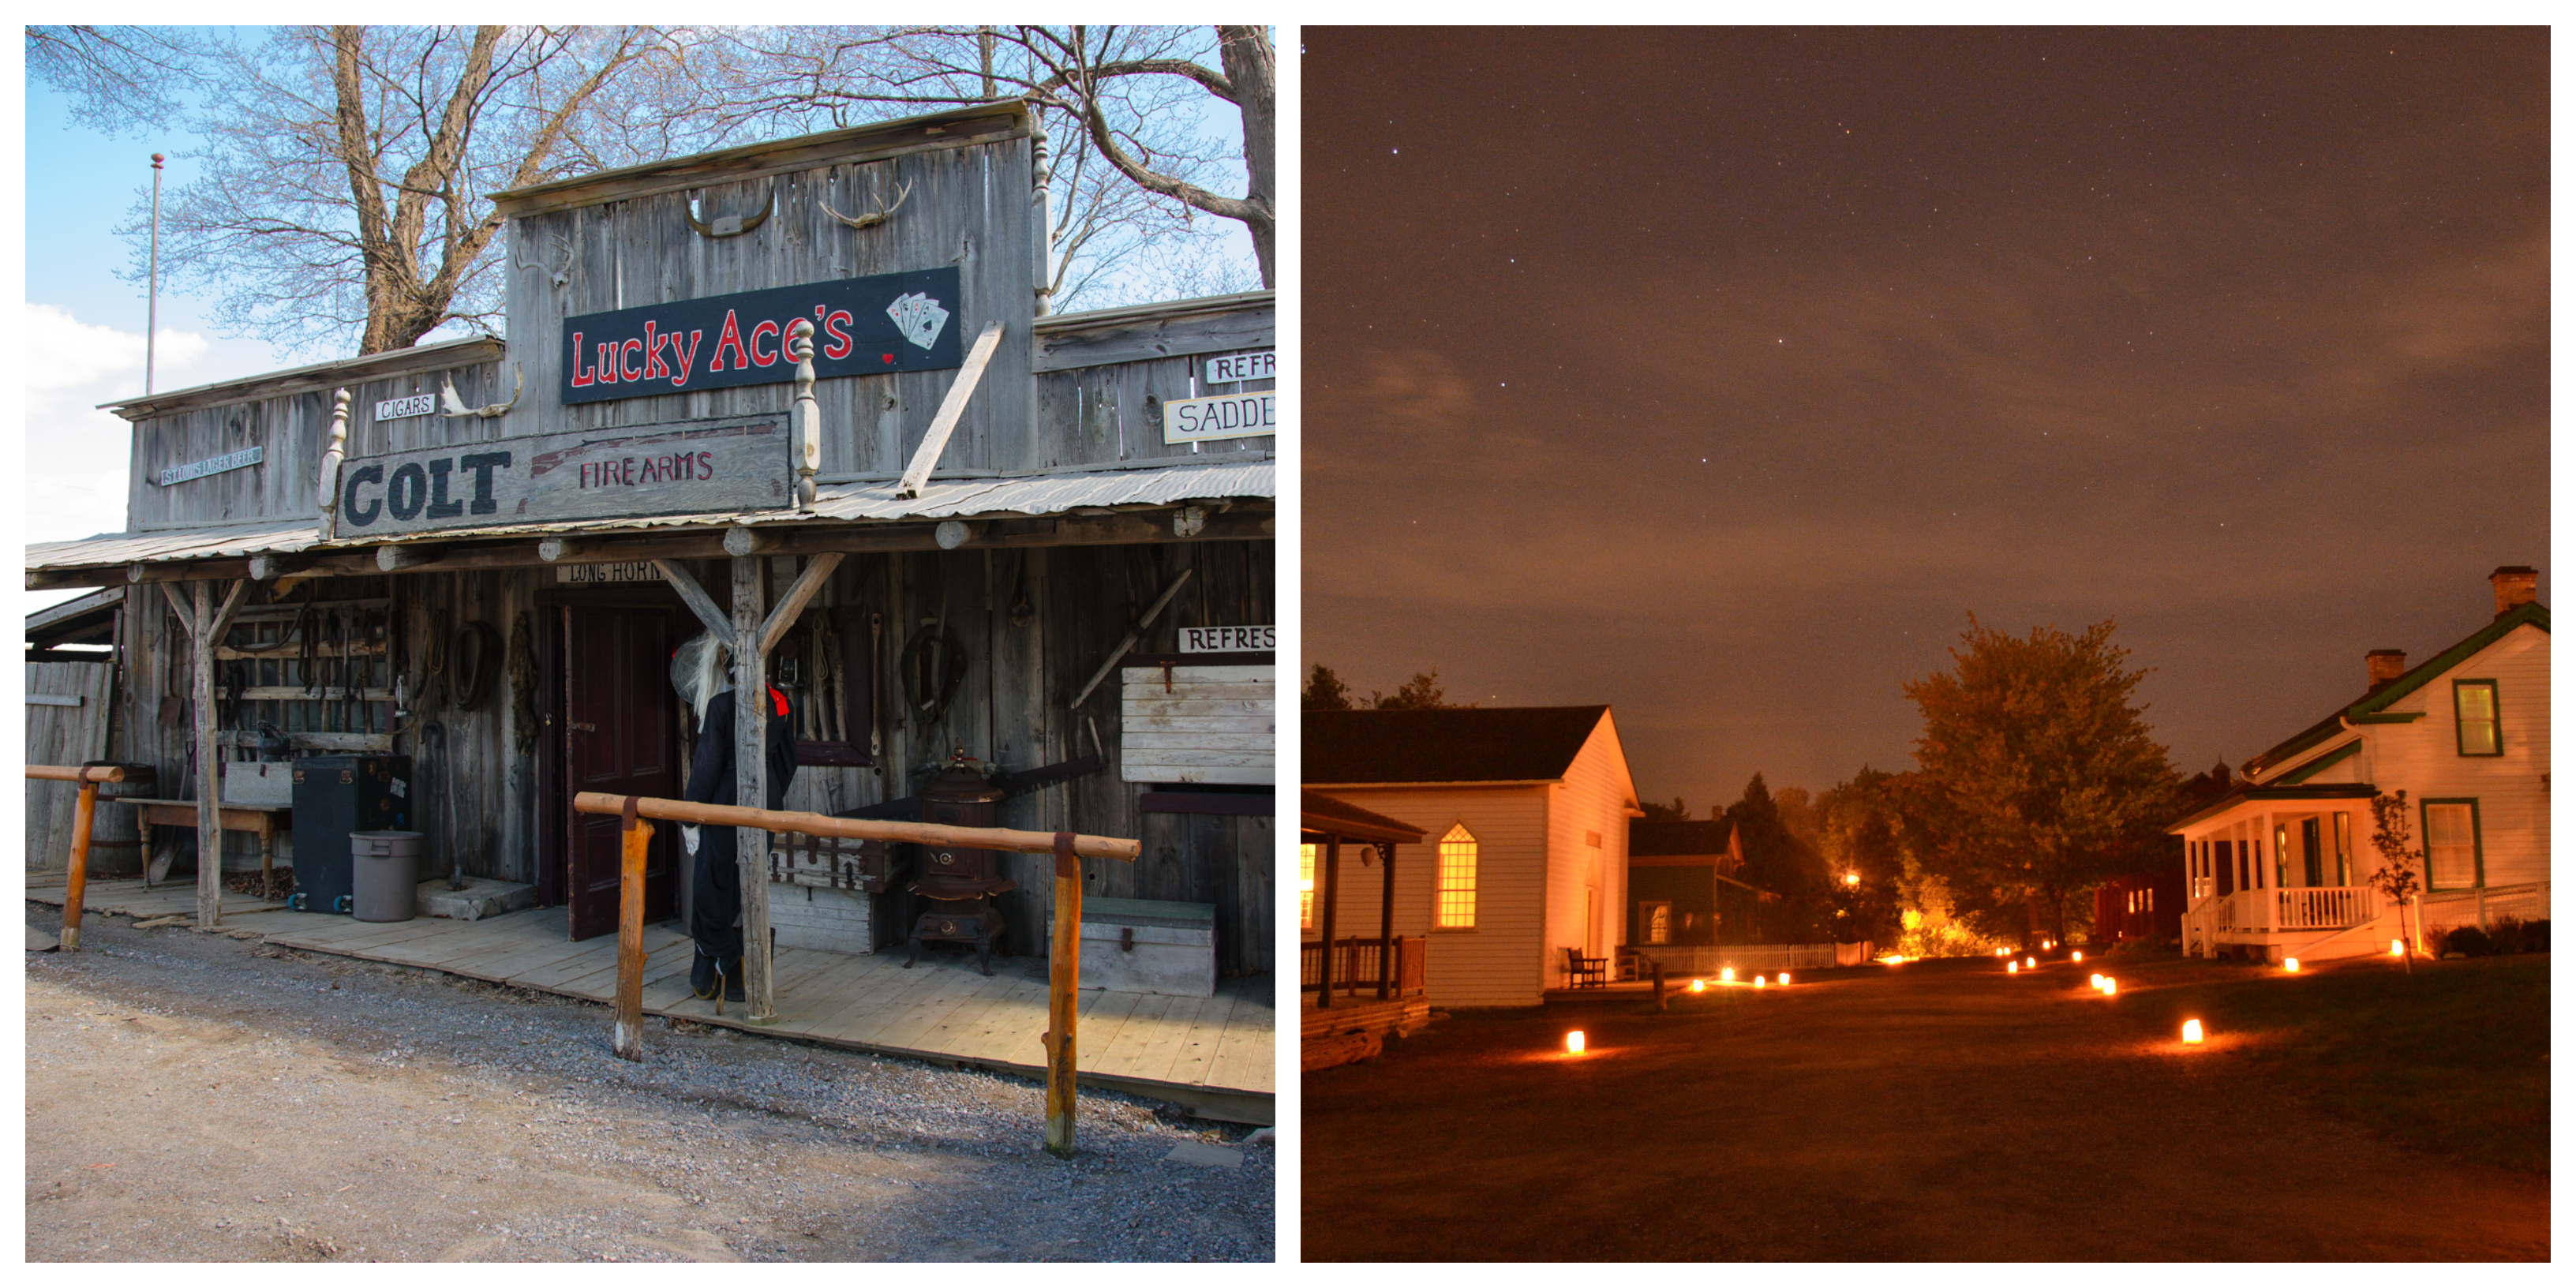 For period shoots, Docville Wild West Movie Set (left) replicates the look and feel of a frontier settlement and Pickering Museum Village (right) brings the pioneer experience to life.